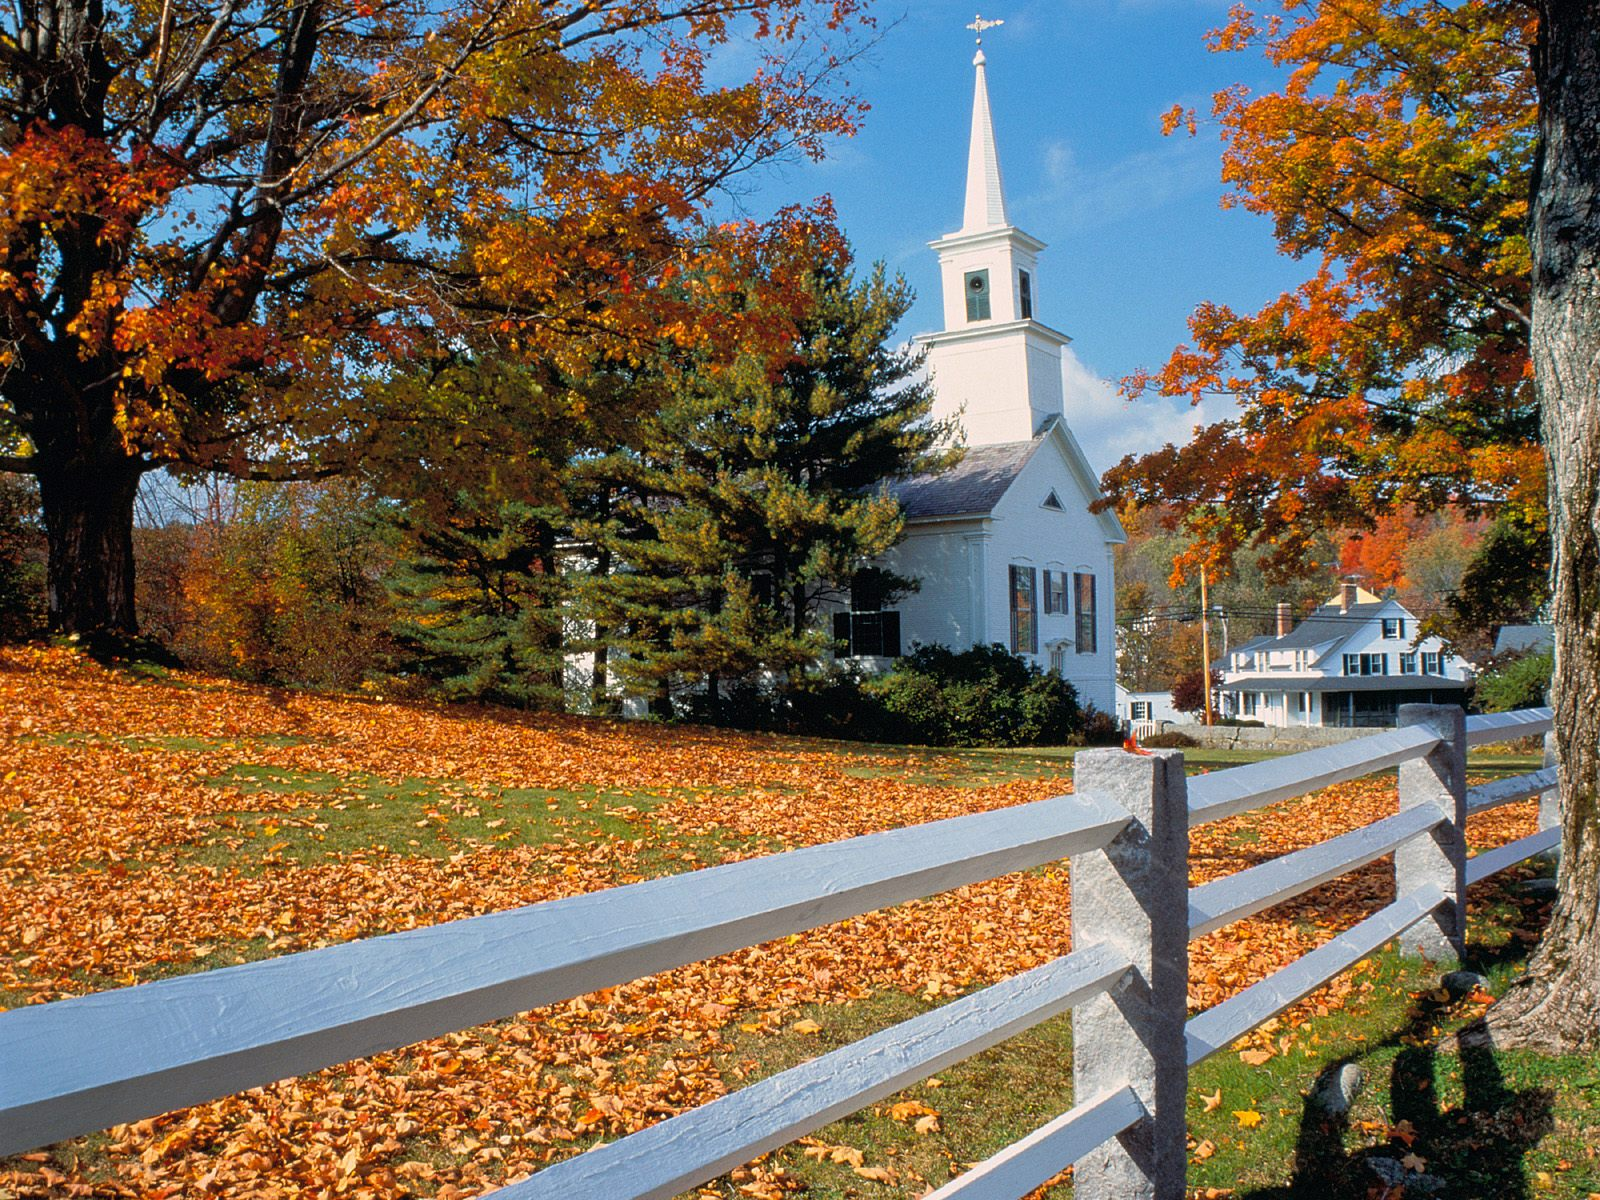 Fall Foliage New England Wallpaper http://www.wallpaperslot.com/wallpaper-church-in-fall-splendor,-new-england-21056.php